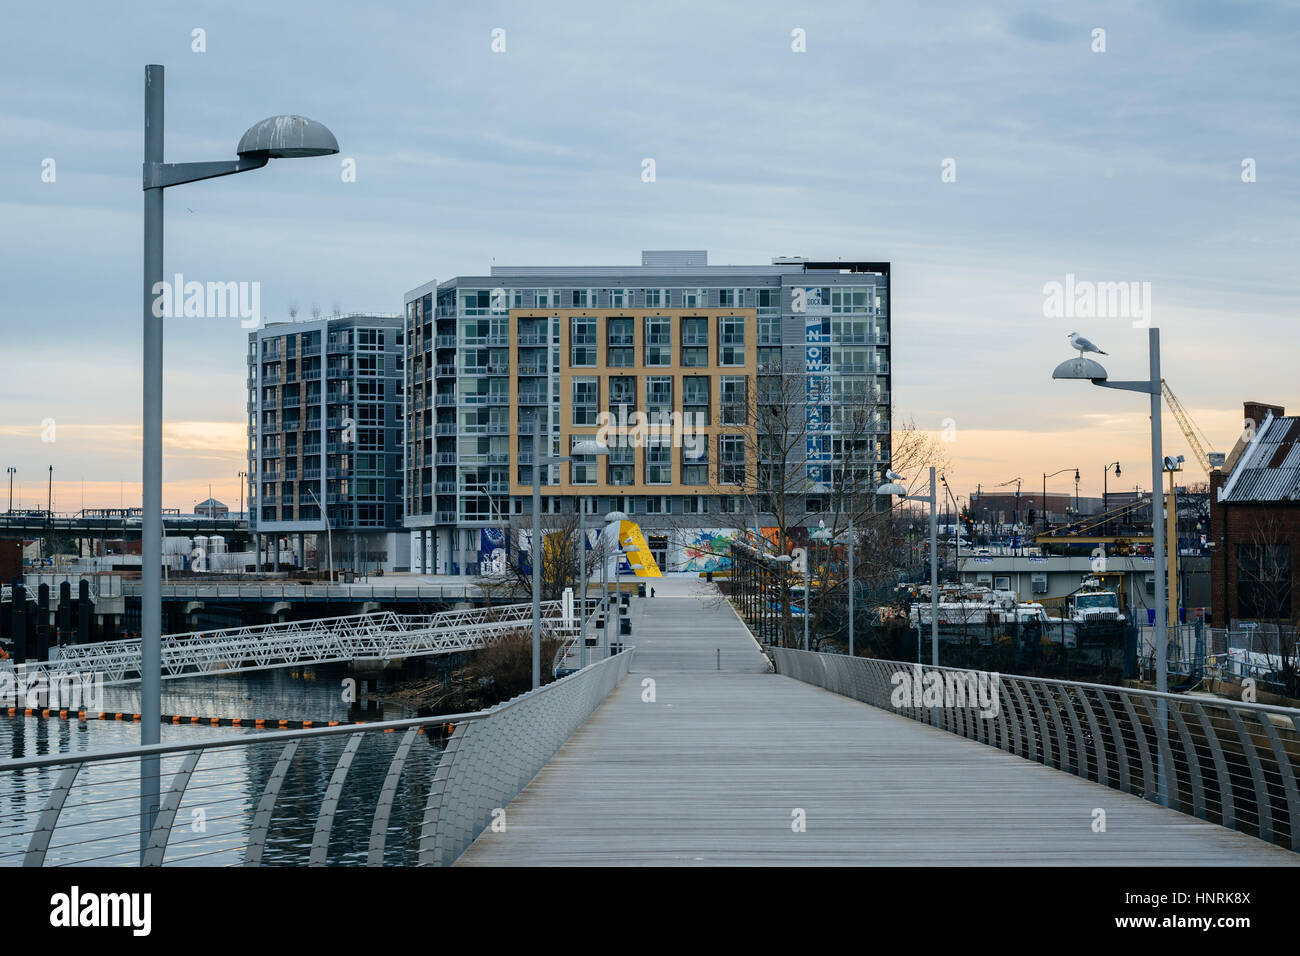 The Anacostia Riverwalk, at The Yards Park, in Washington, DC. Stock Photo